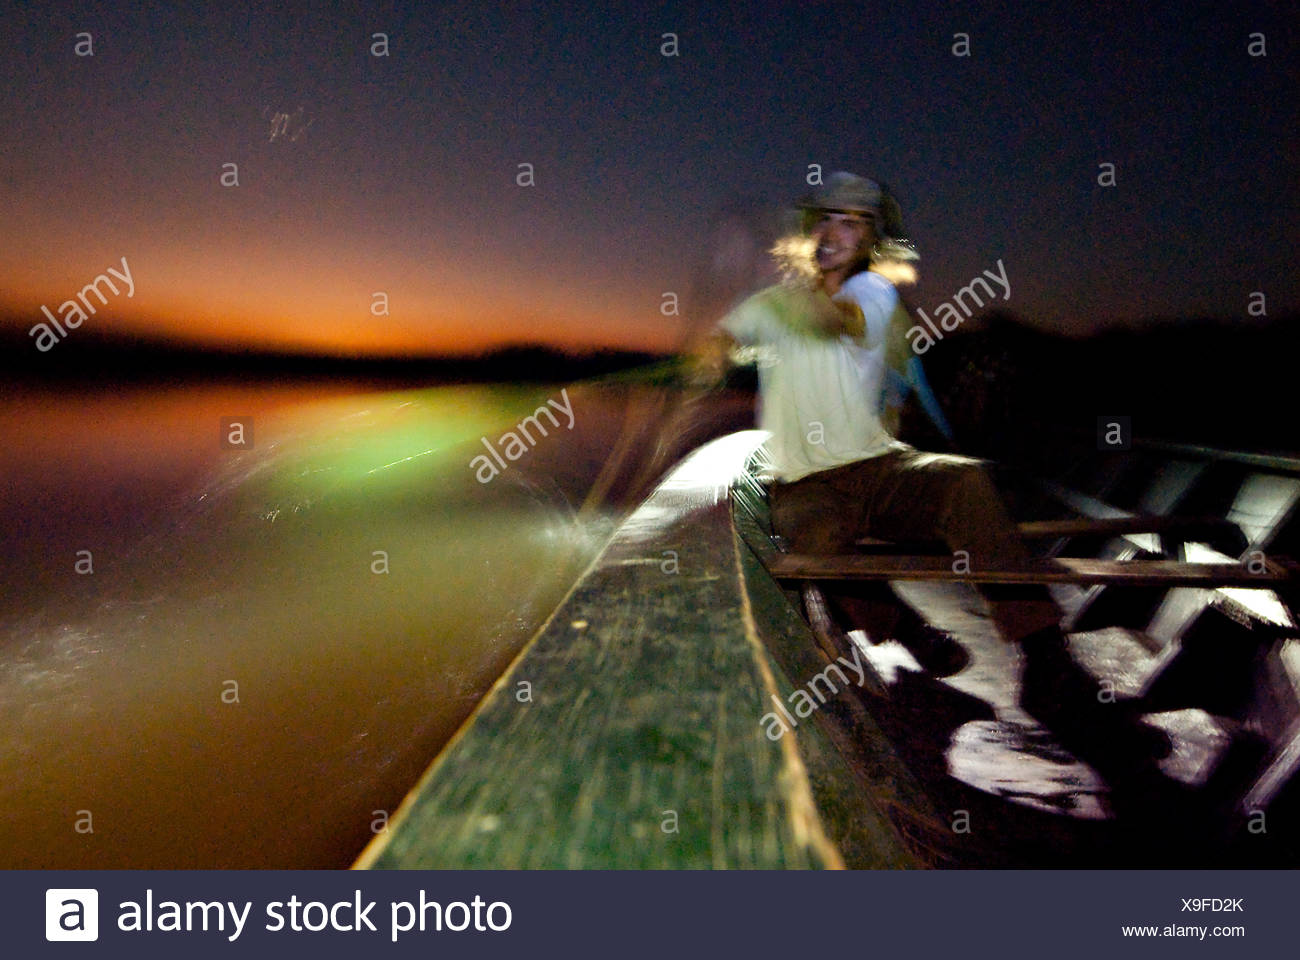 Dorian SImon paddles a large wooden canoe at sunset in sandoval lake. - Stock Image